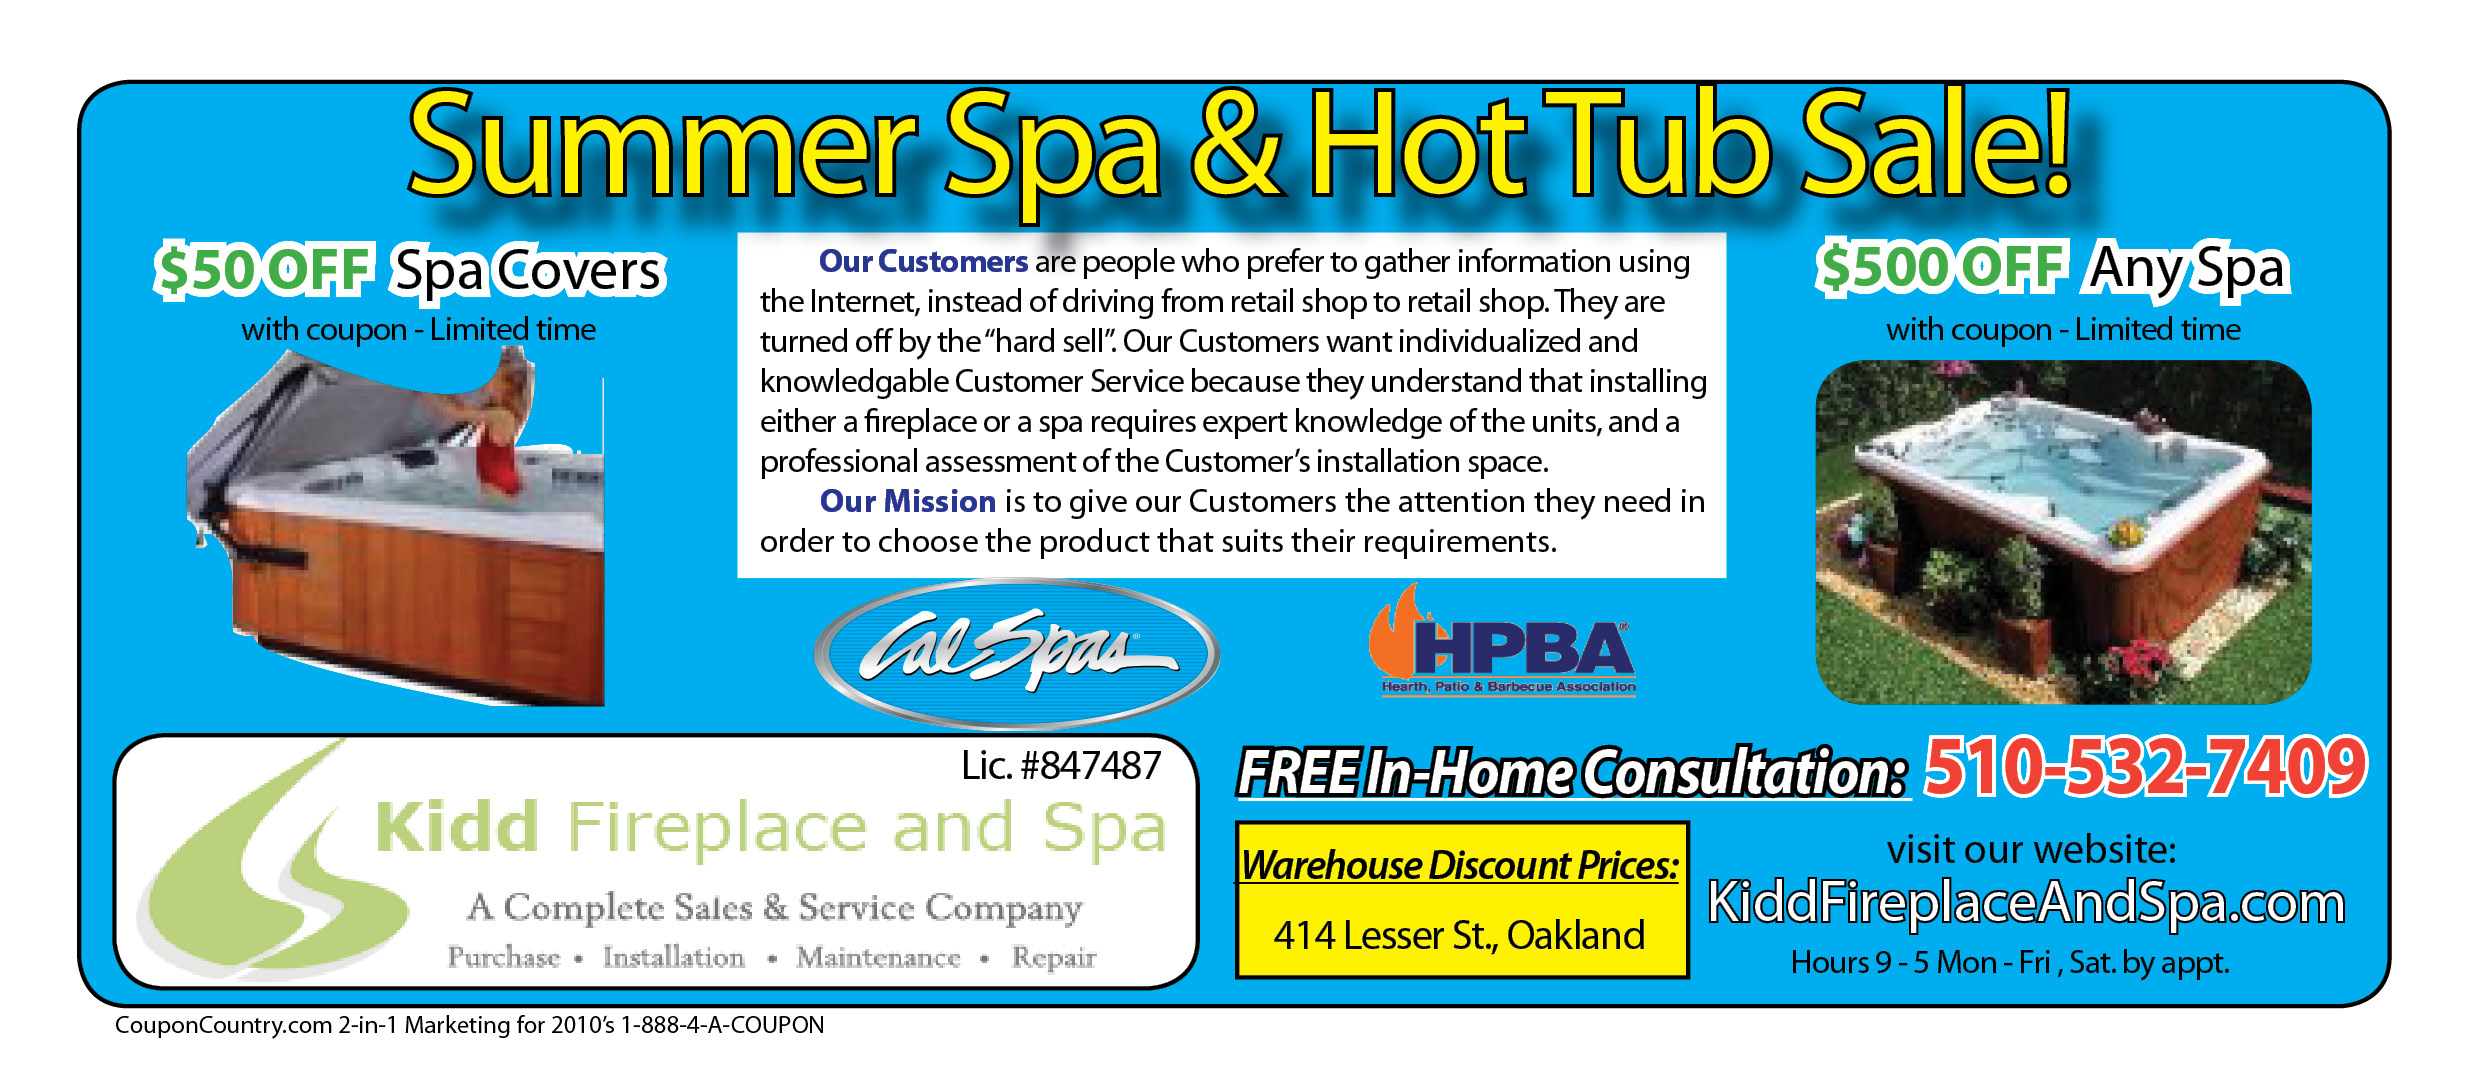 Coupons, Deals and Discounts | DISCOUNT SPA COVERS & HOT TUB ...